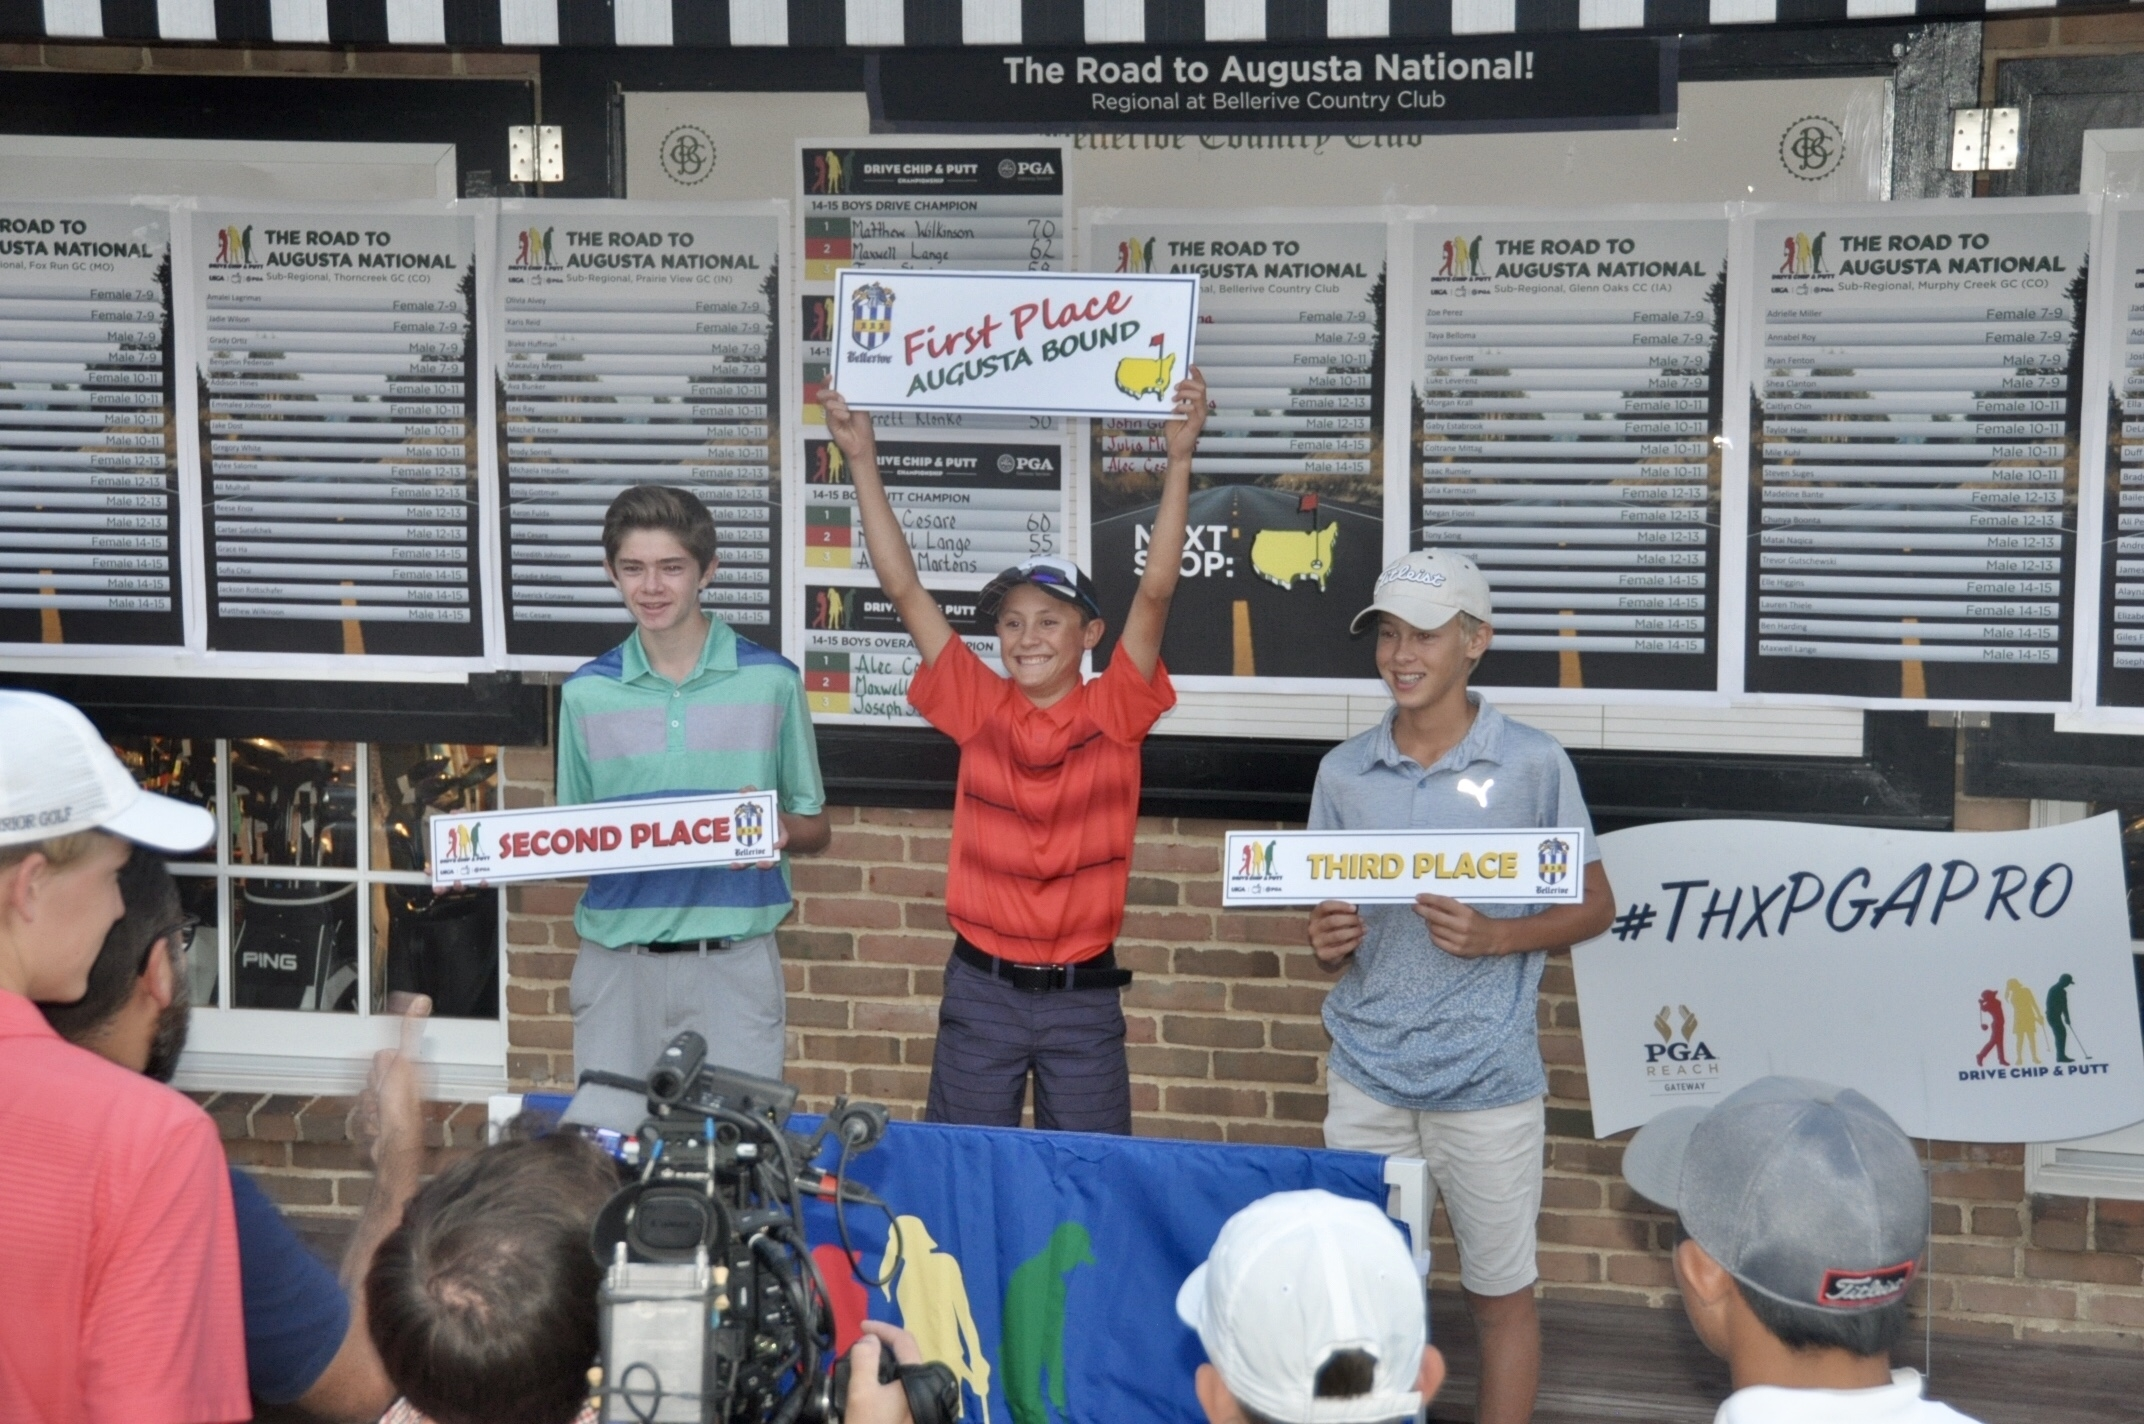 DRIVE, CHIP AND PUTT REGIONAL CHAMPIONS EARN INVITATIONS  TO NATIONAL FINALS AT AUGUSTA NATIONAL GOLF CLUB - INCLUDING INDIANA'S ALEC CESARE